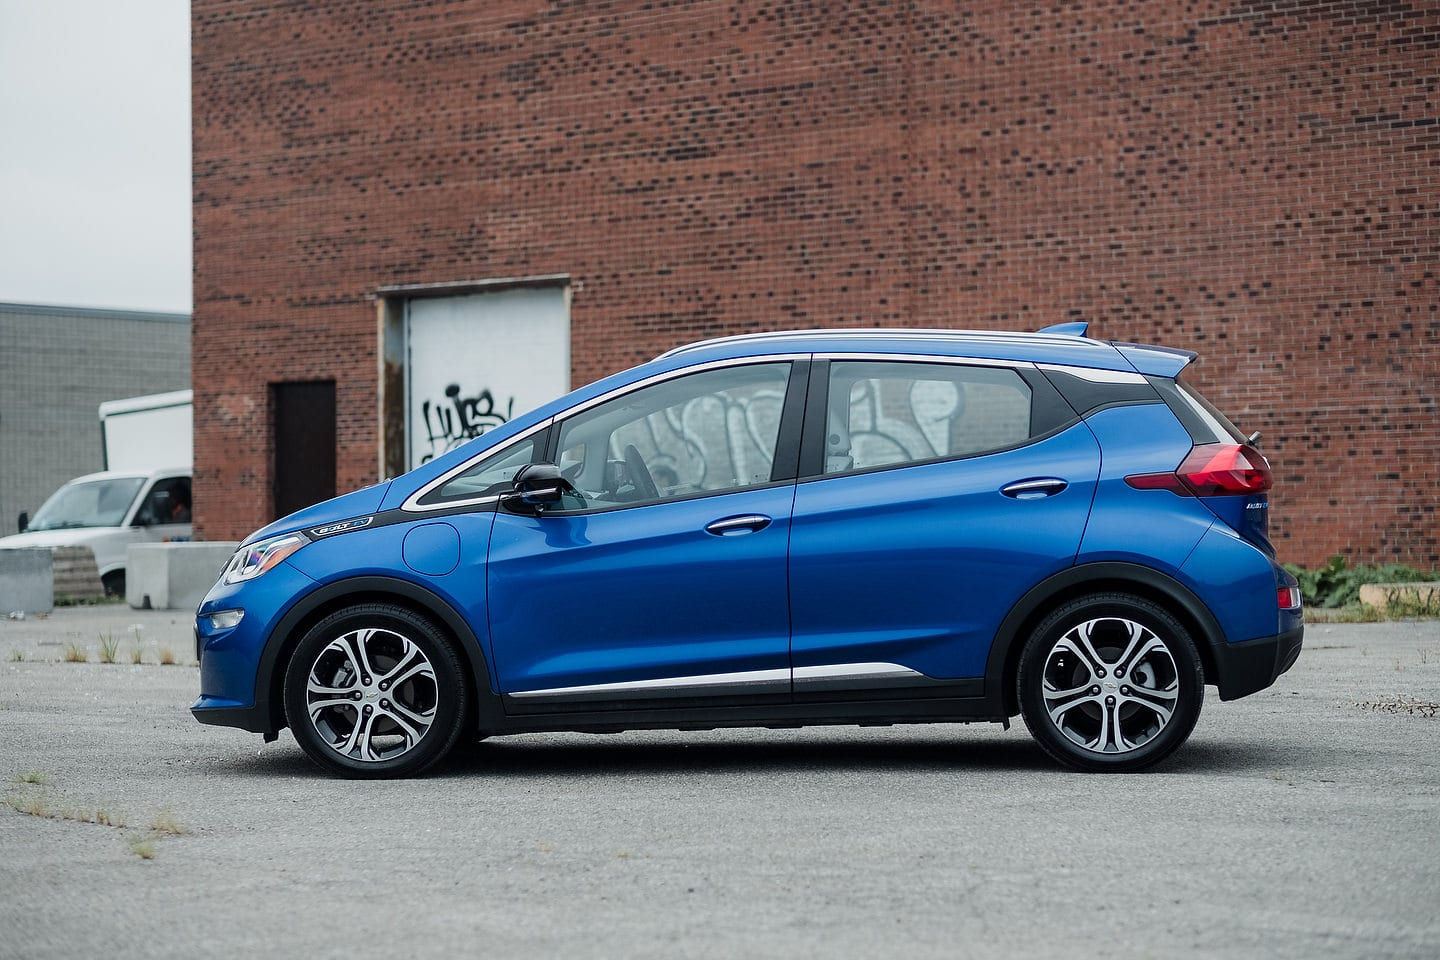 2018 Chevrolet Bolt | Photo: Olivier Delorme